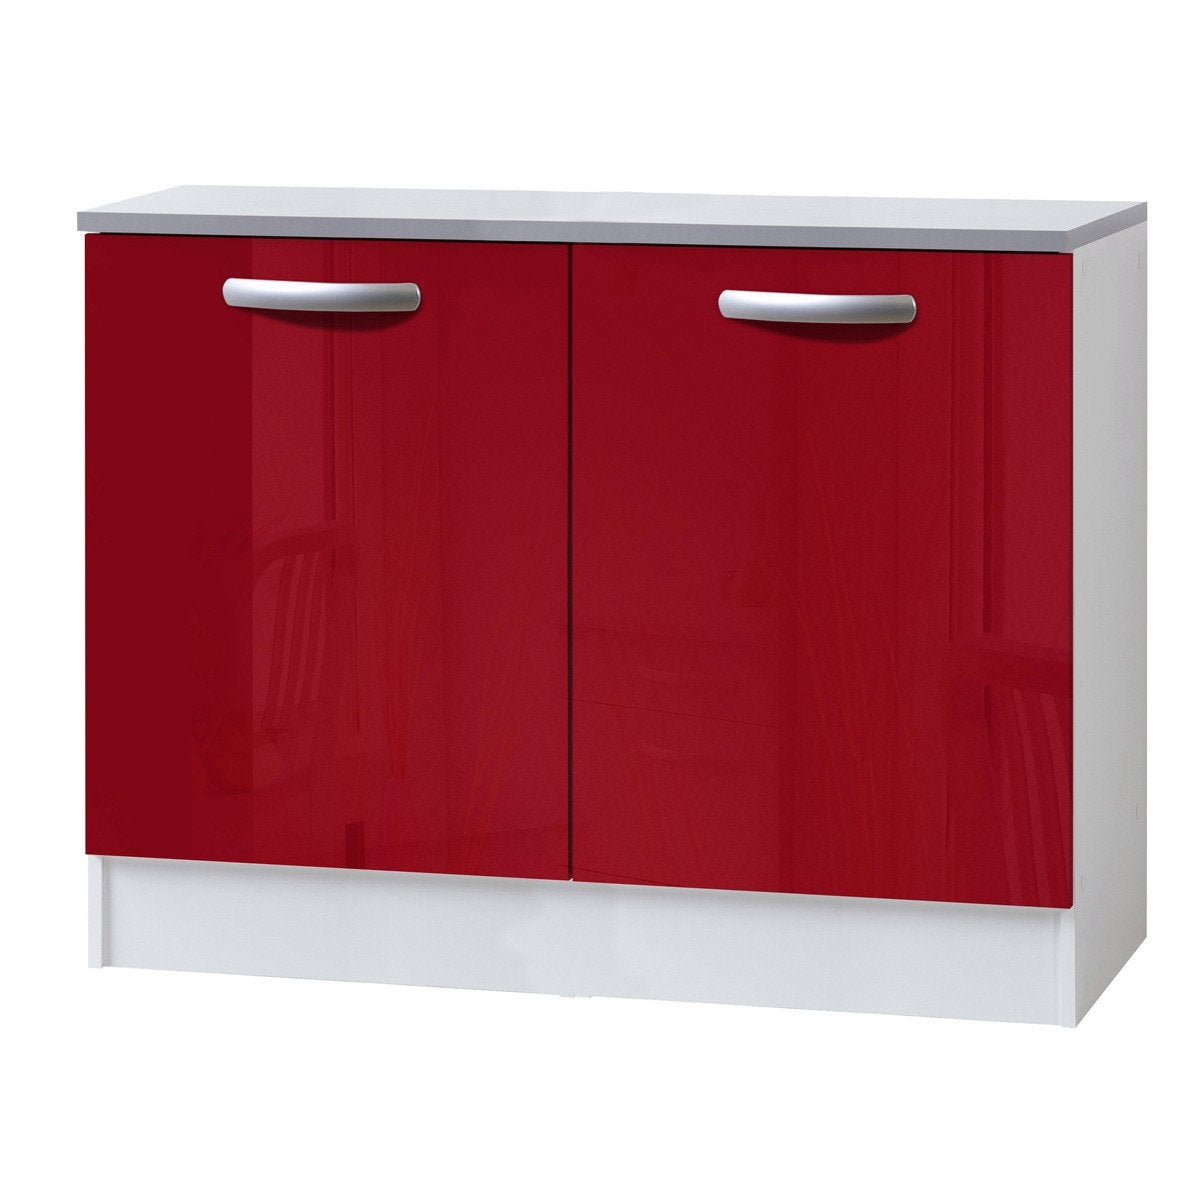 Meuble de cuisine bas 2 portes rouge brillant h86x l120x for Portes elements cuisine leroy merlin